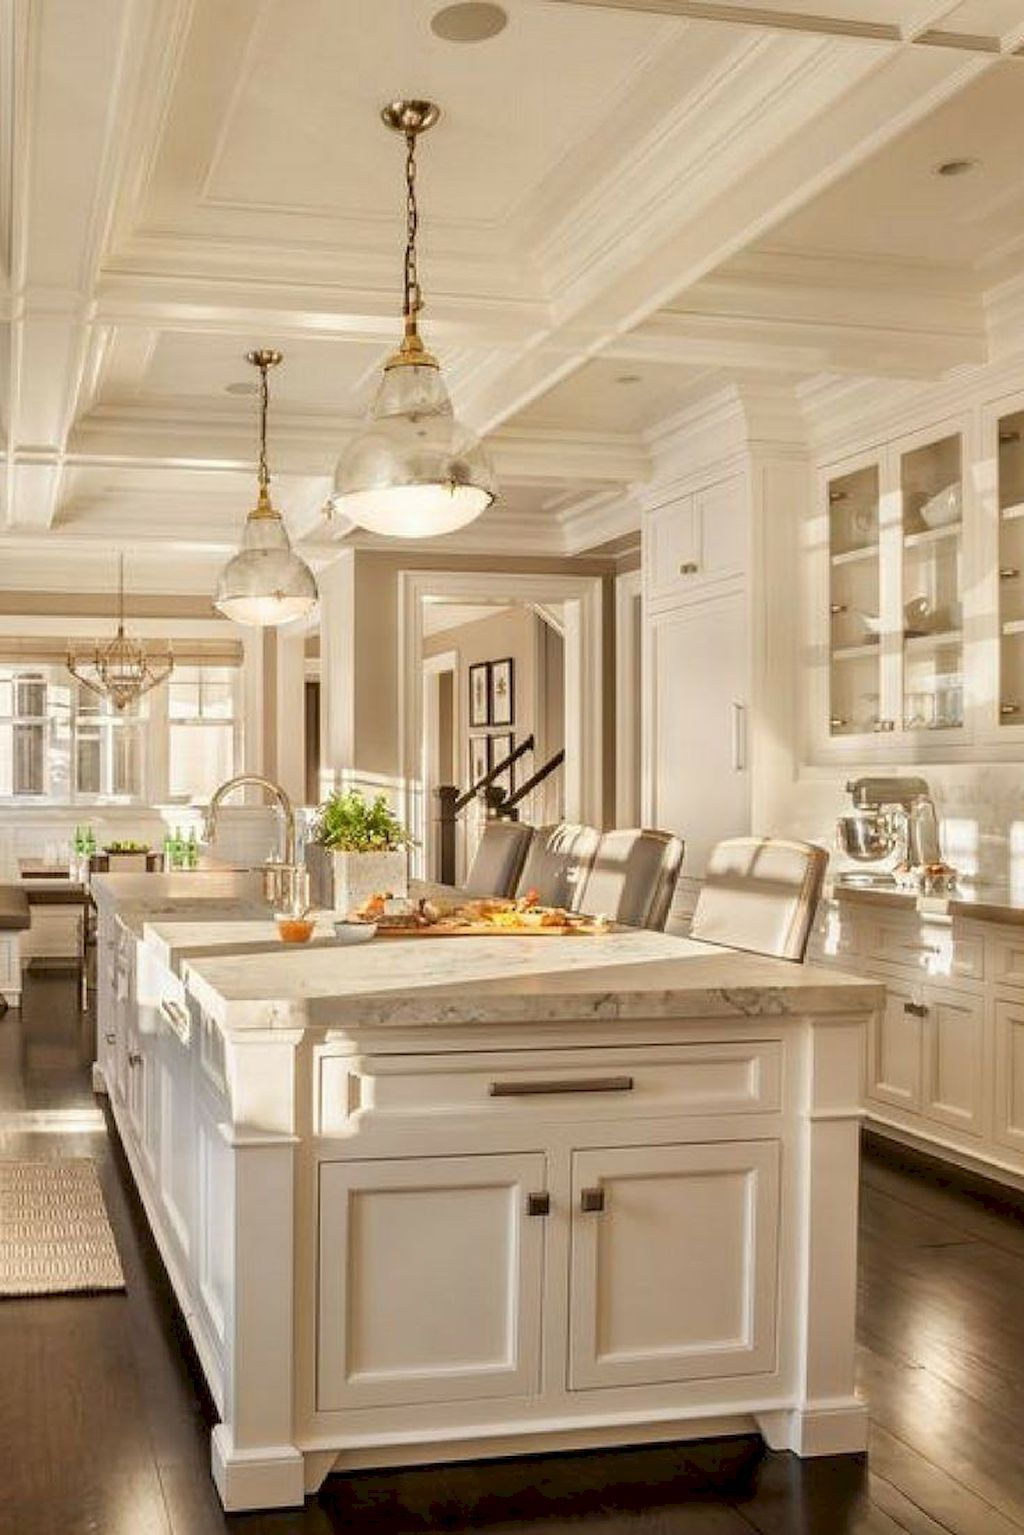 25 beautiful white kitchen cabinet makeover design ideas my house rh pinterest com